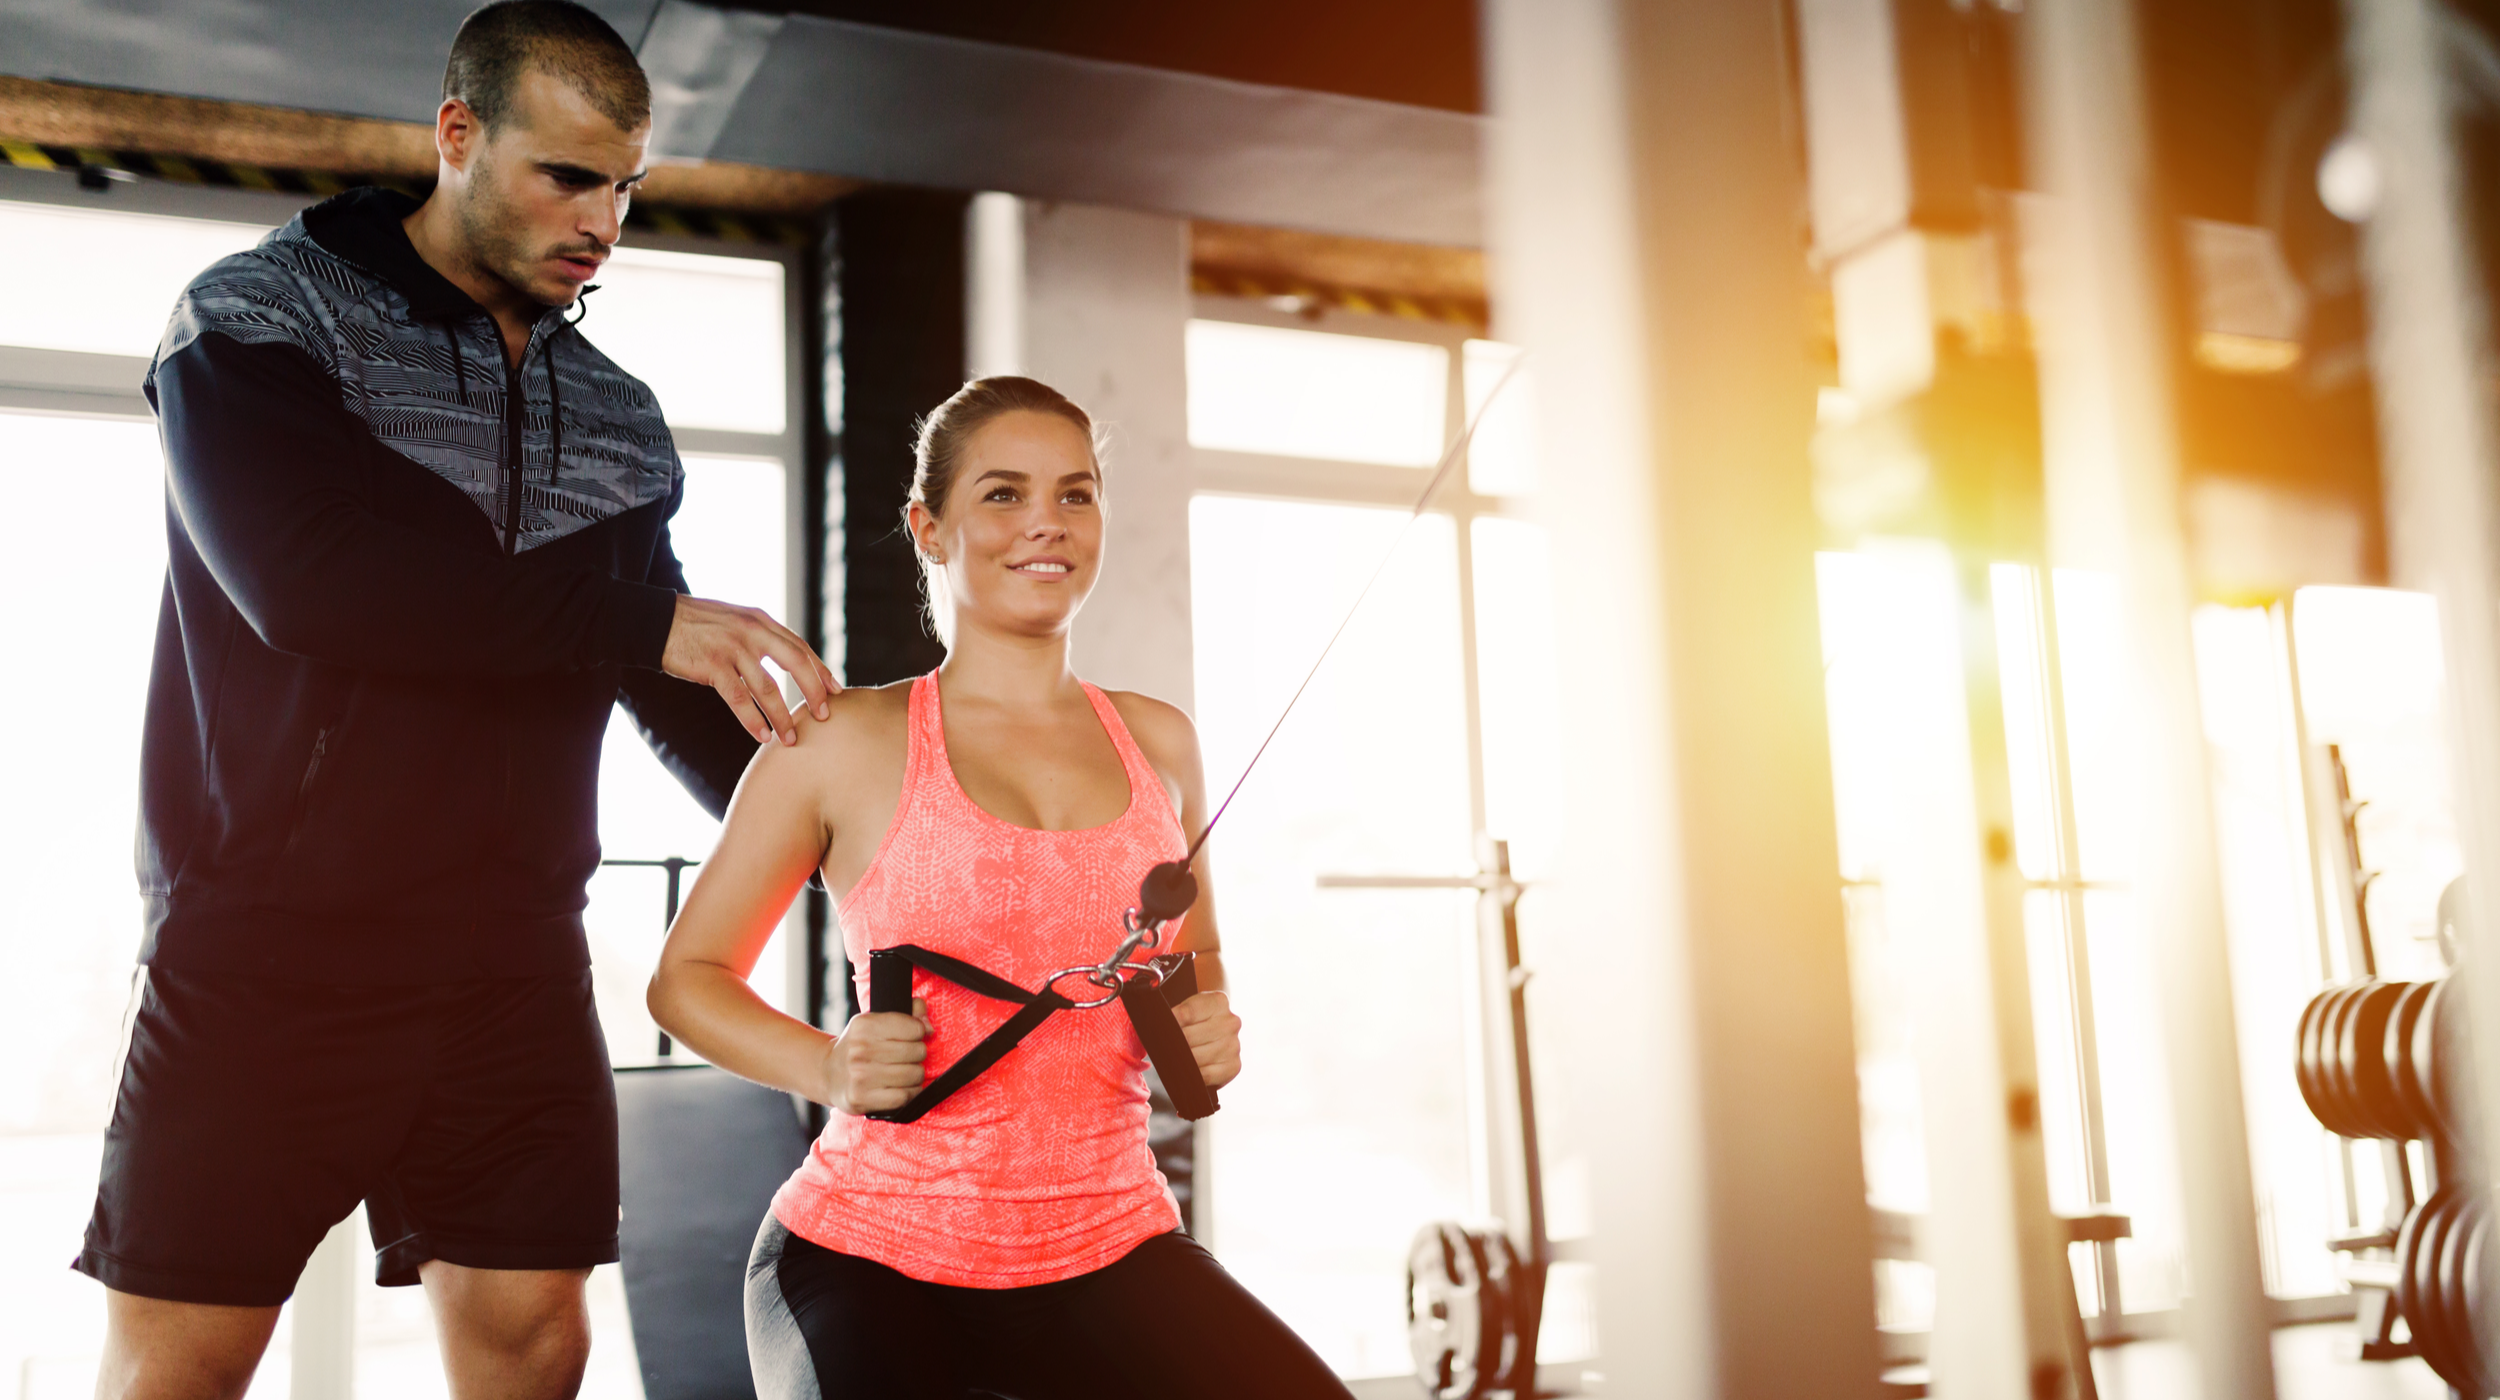 Are Personal Trainers Worth the Cost?